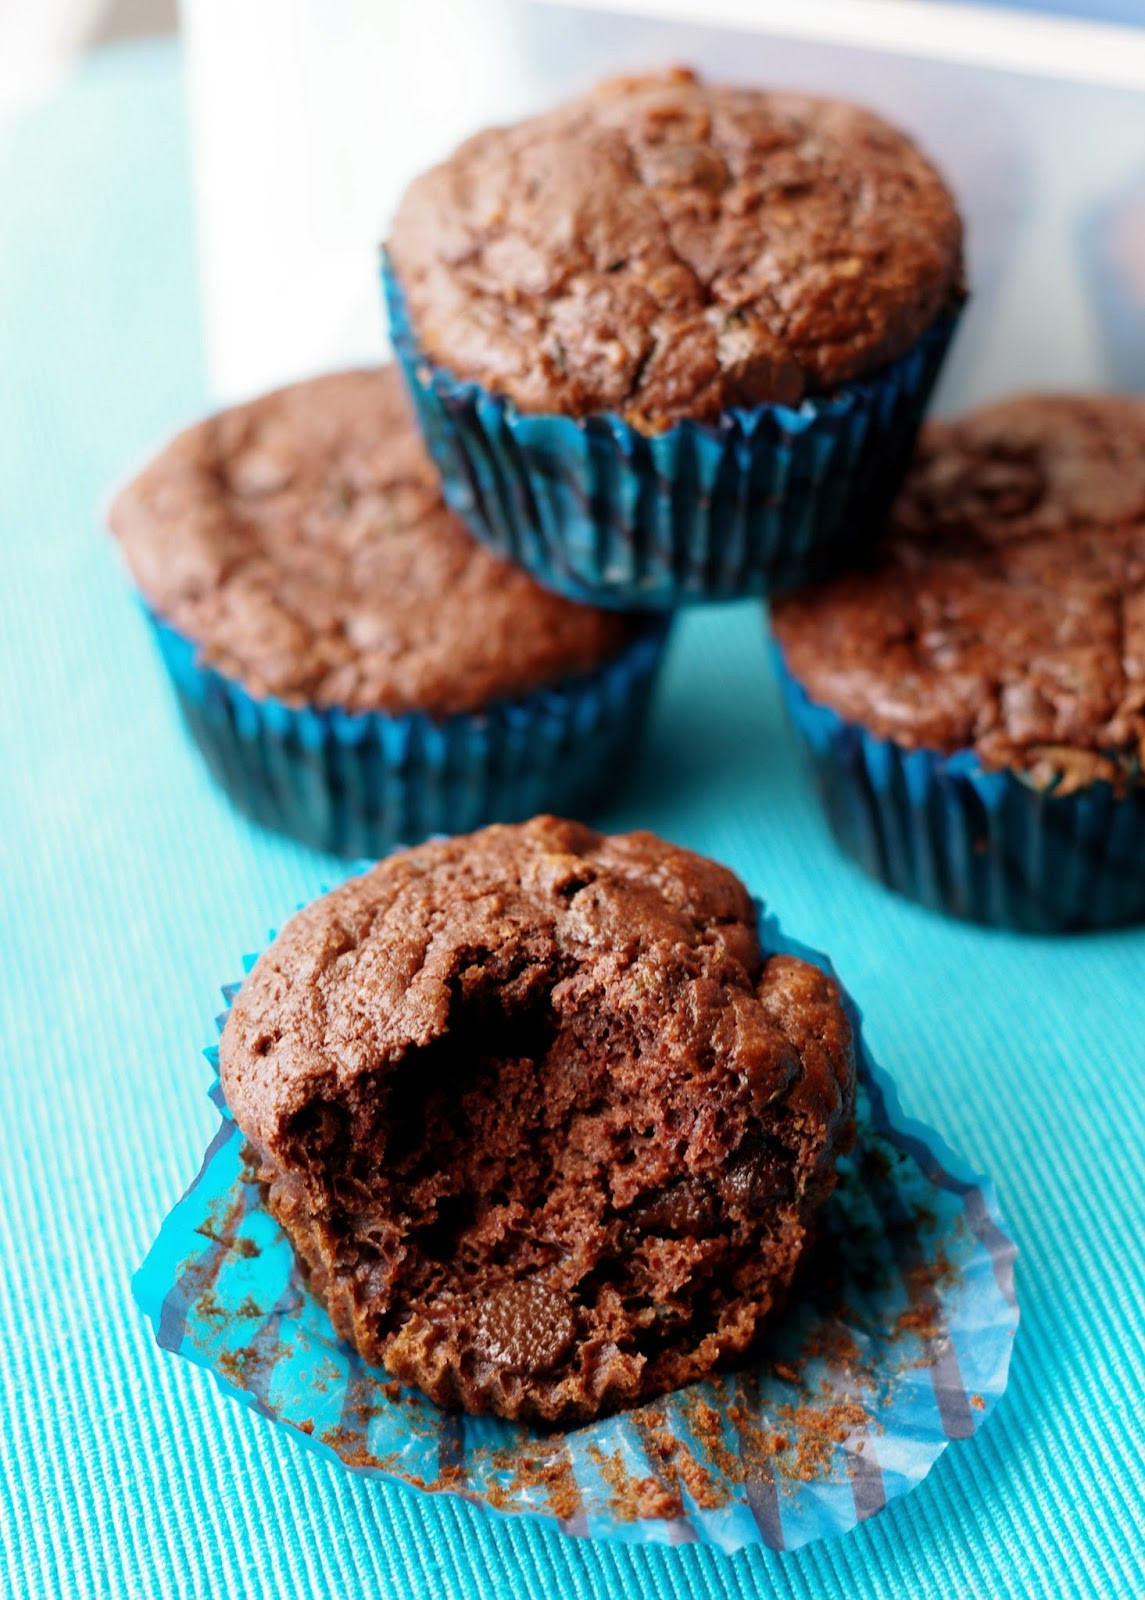 Healthy Chocolate Chip Zucchini Muffins  the nOATbook Healthy Chocolate Chip Zucchini Muffins